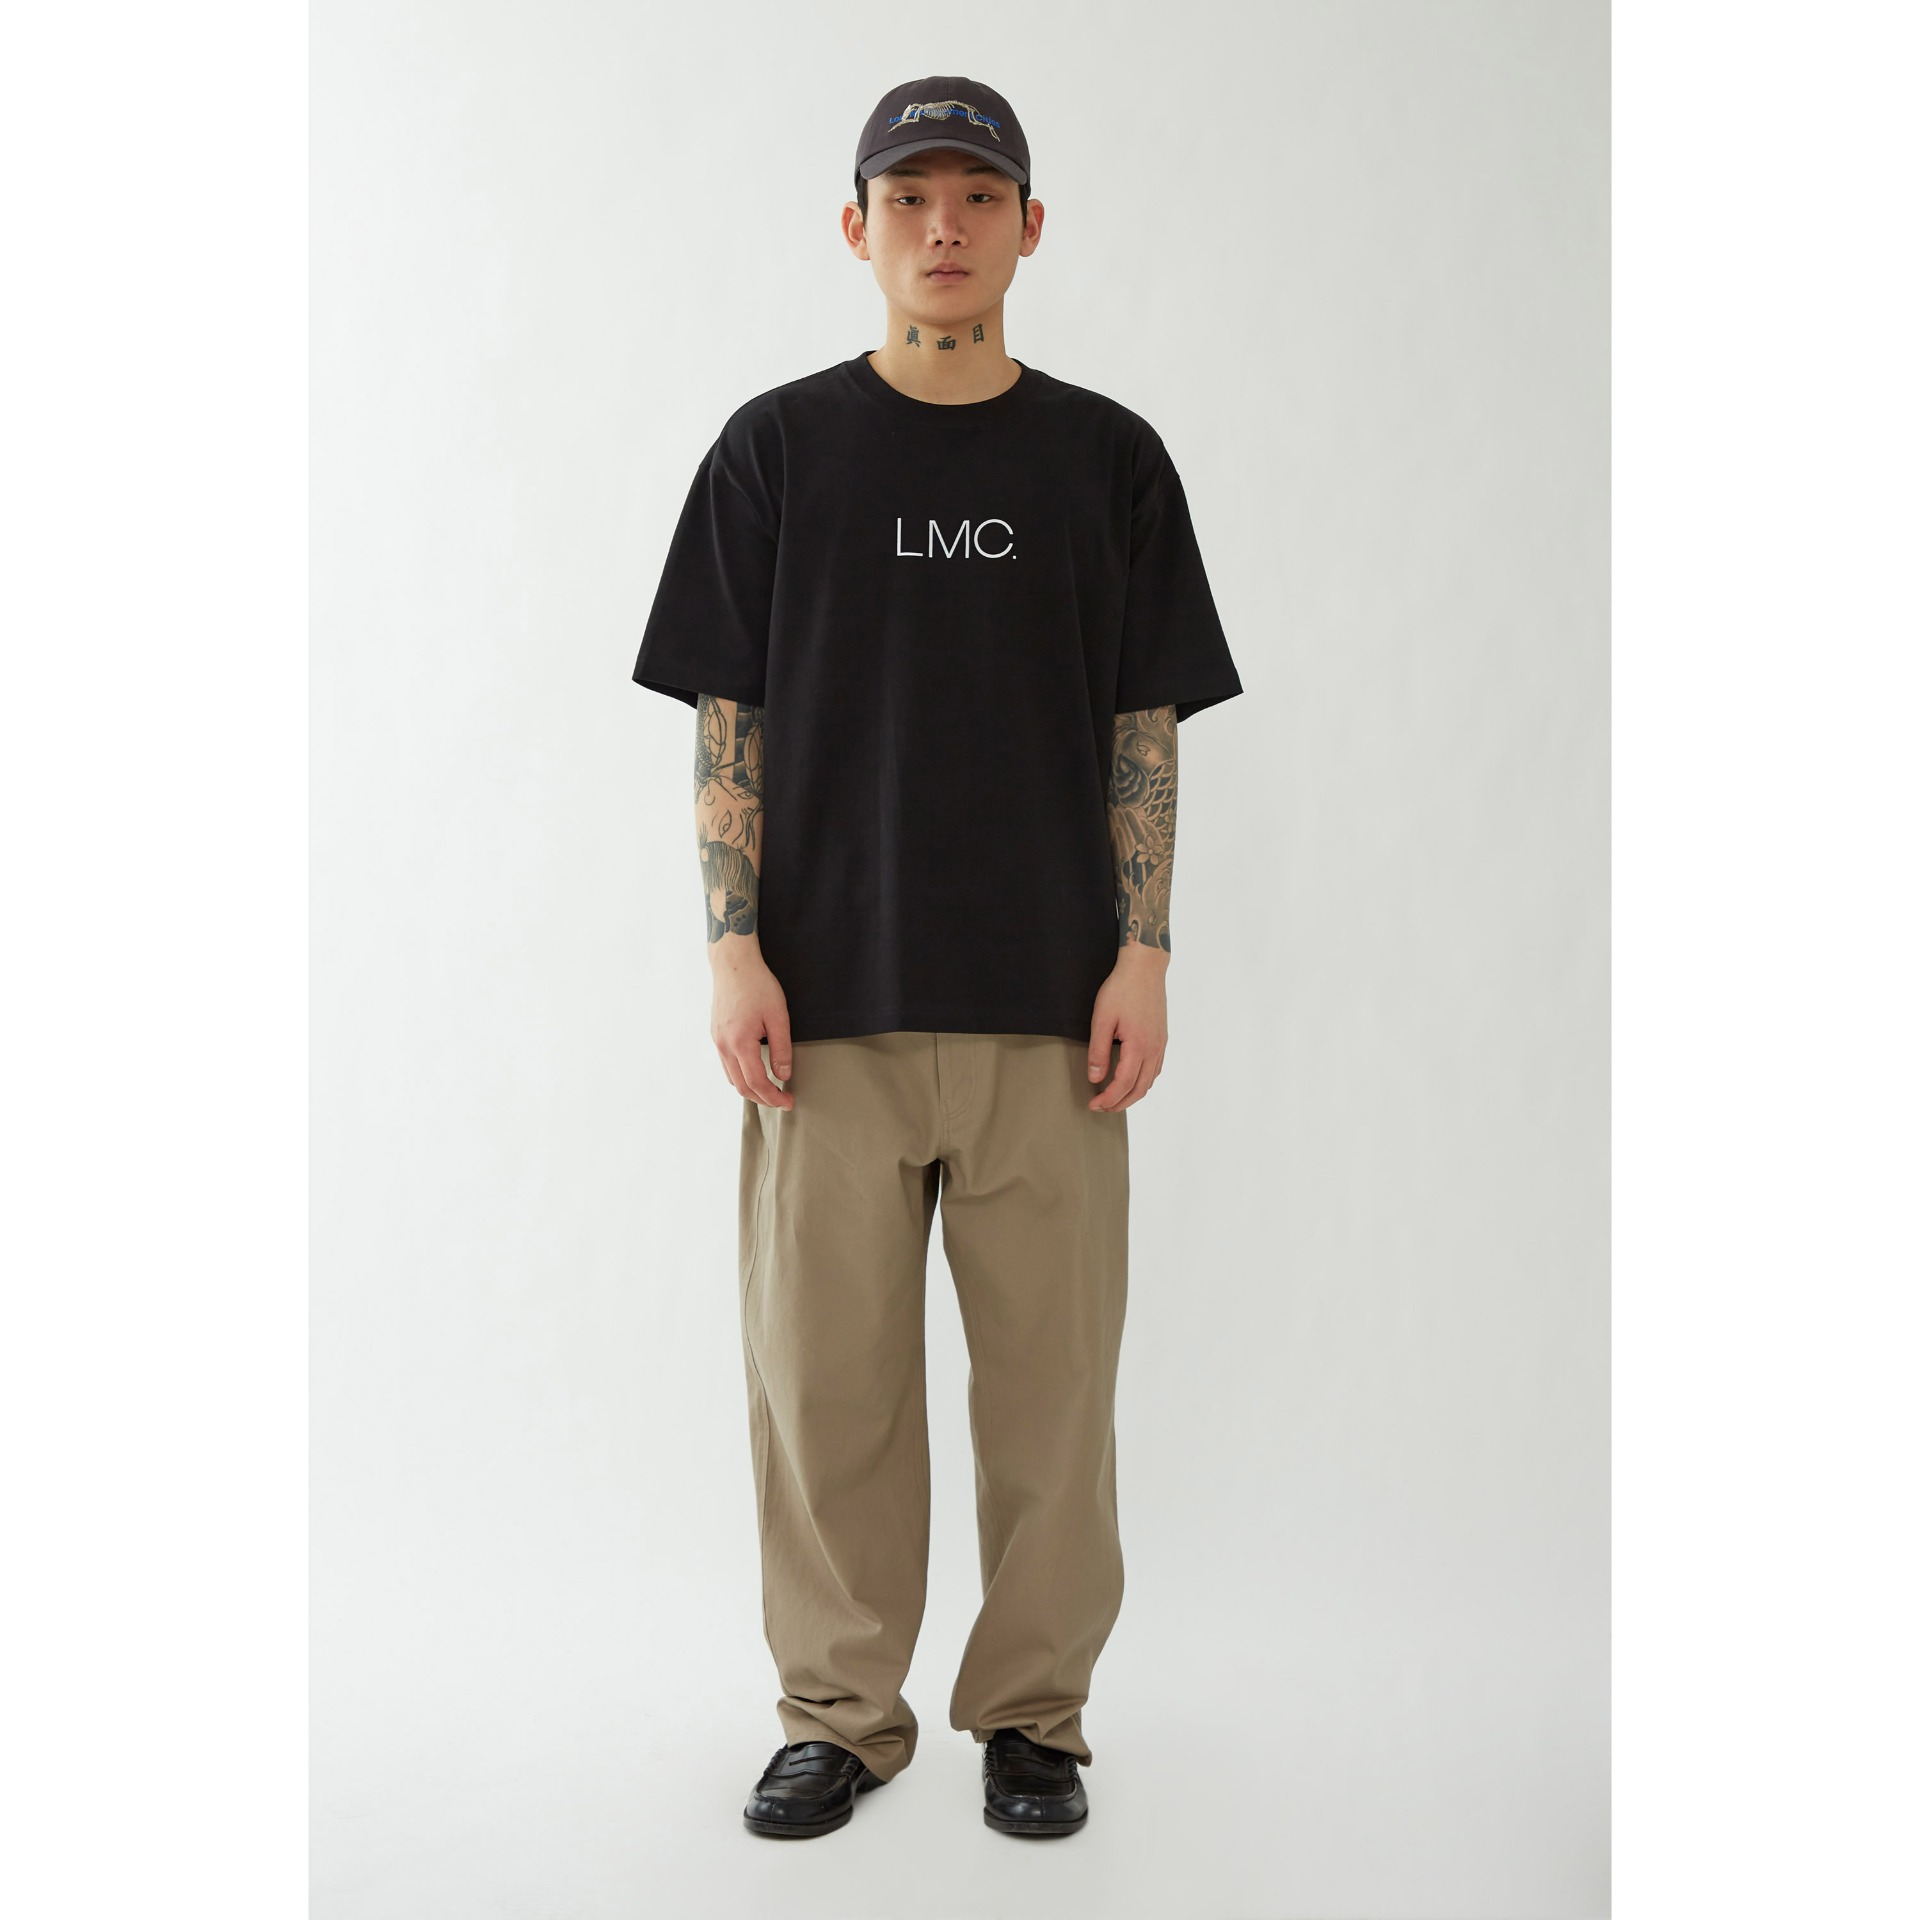 LMC THIN LOGO TEE black